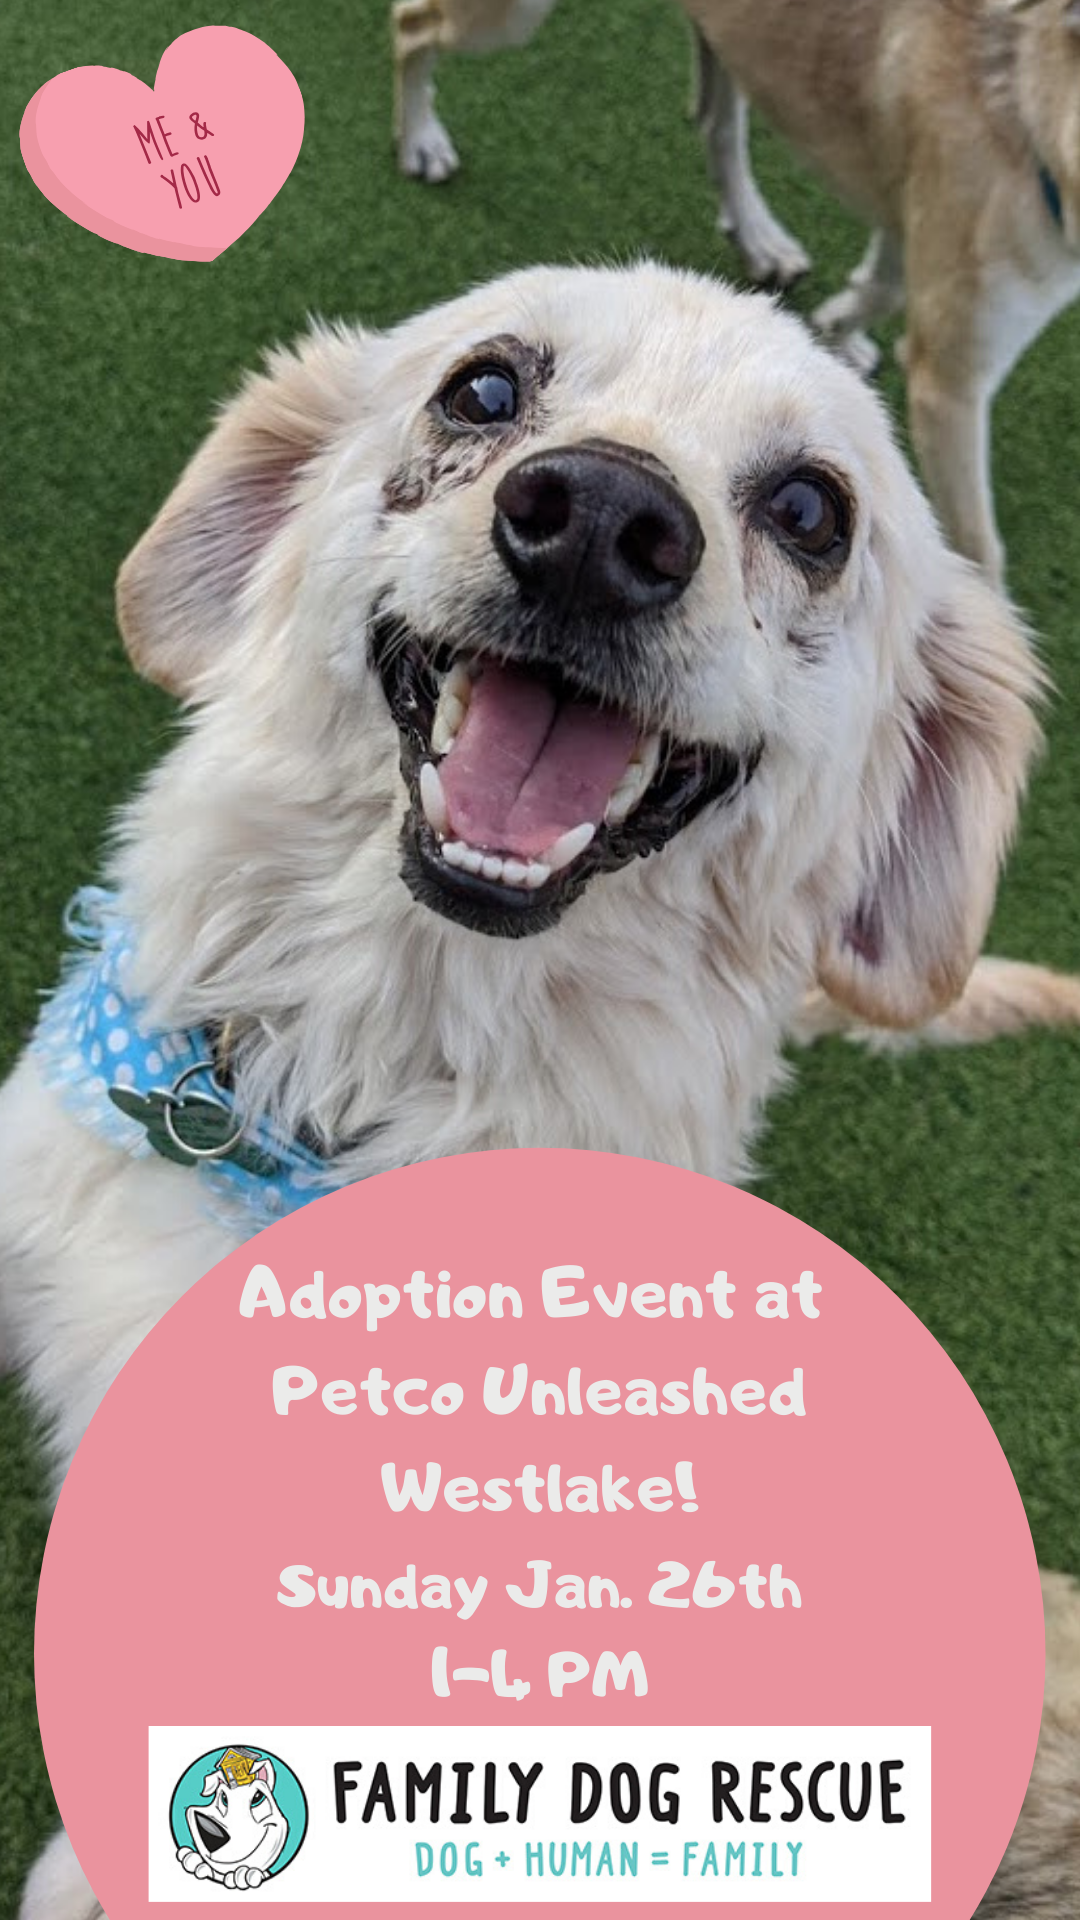 Adoption Event at Petco Unleashed in Westlake! @ Petco Unleashed - Westlake